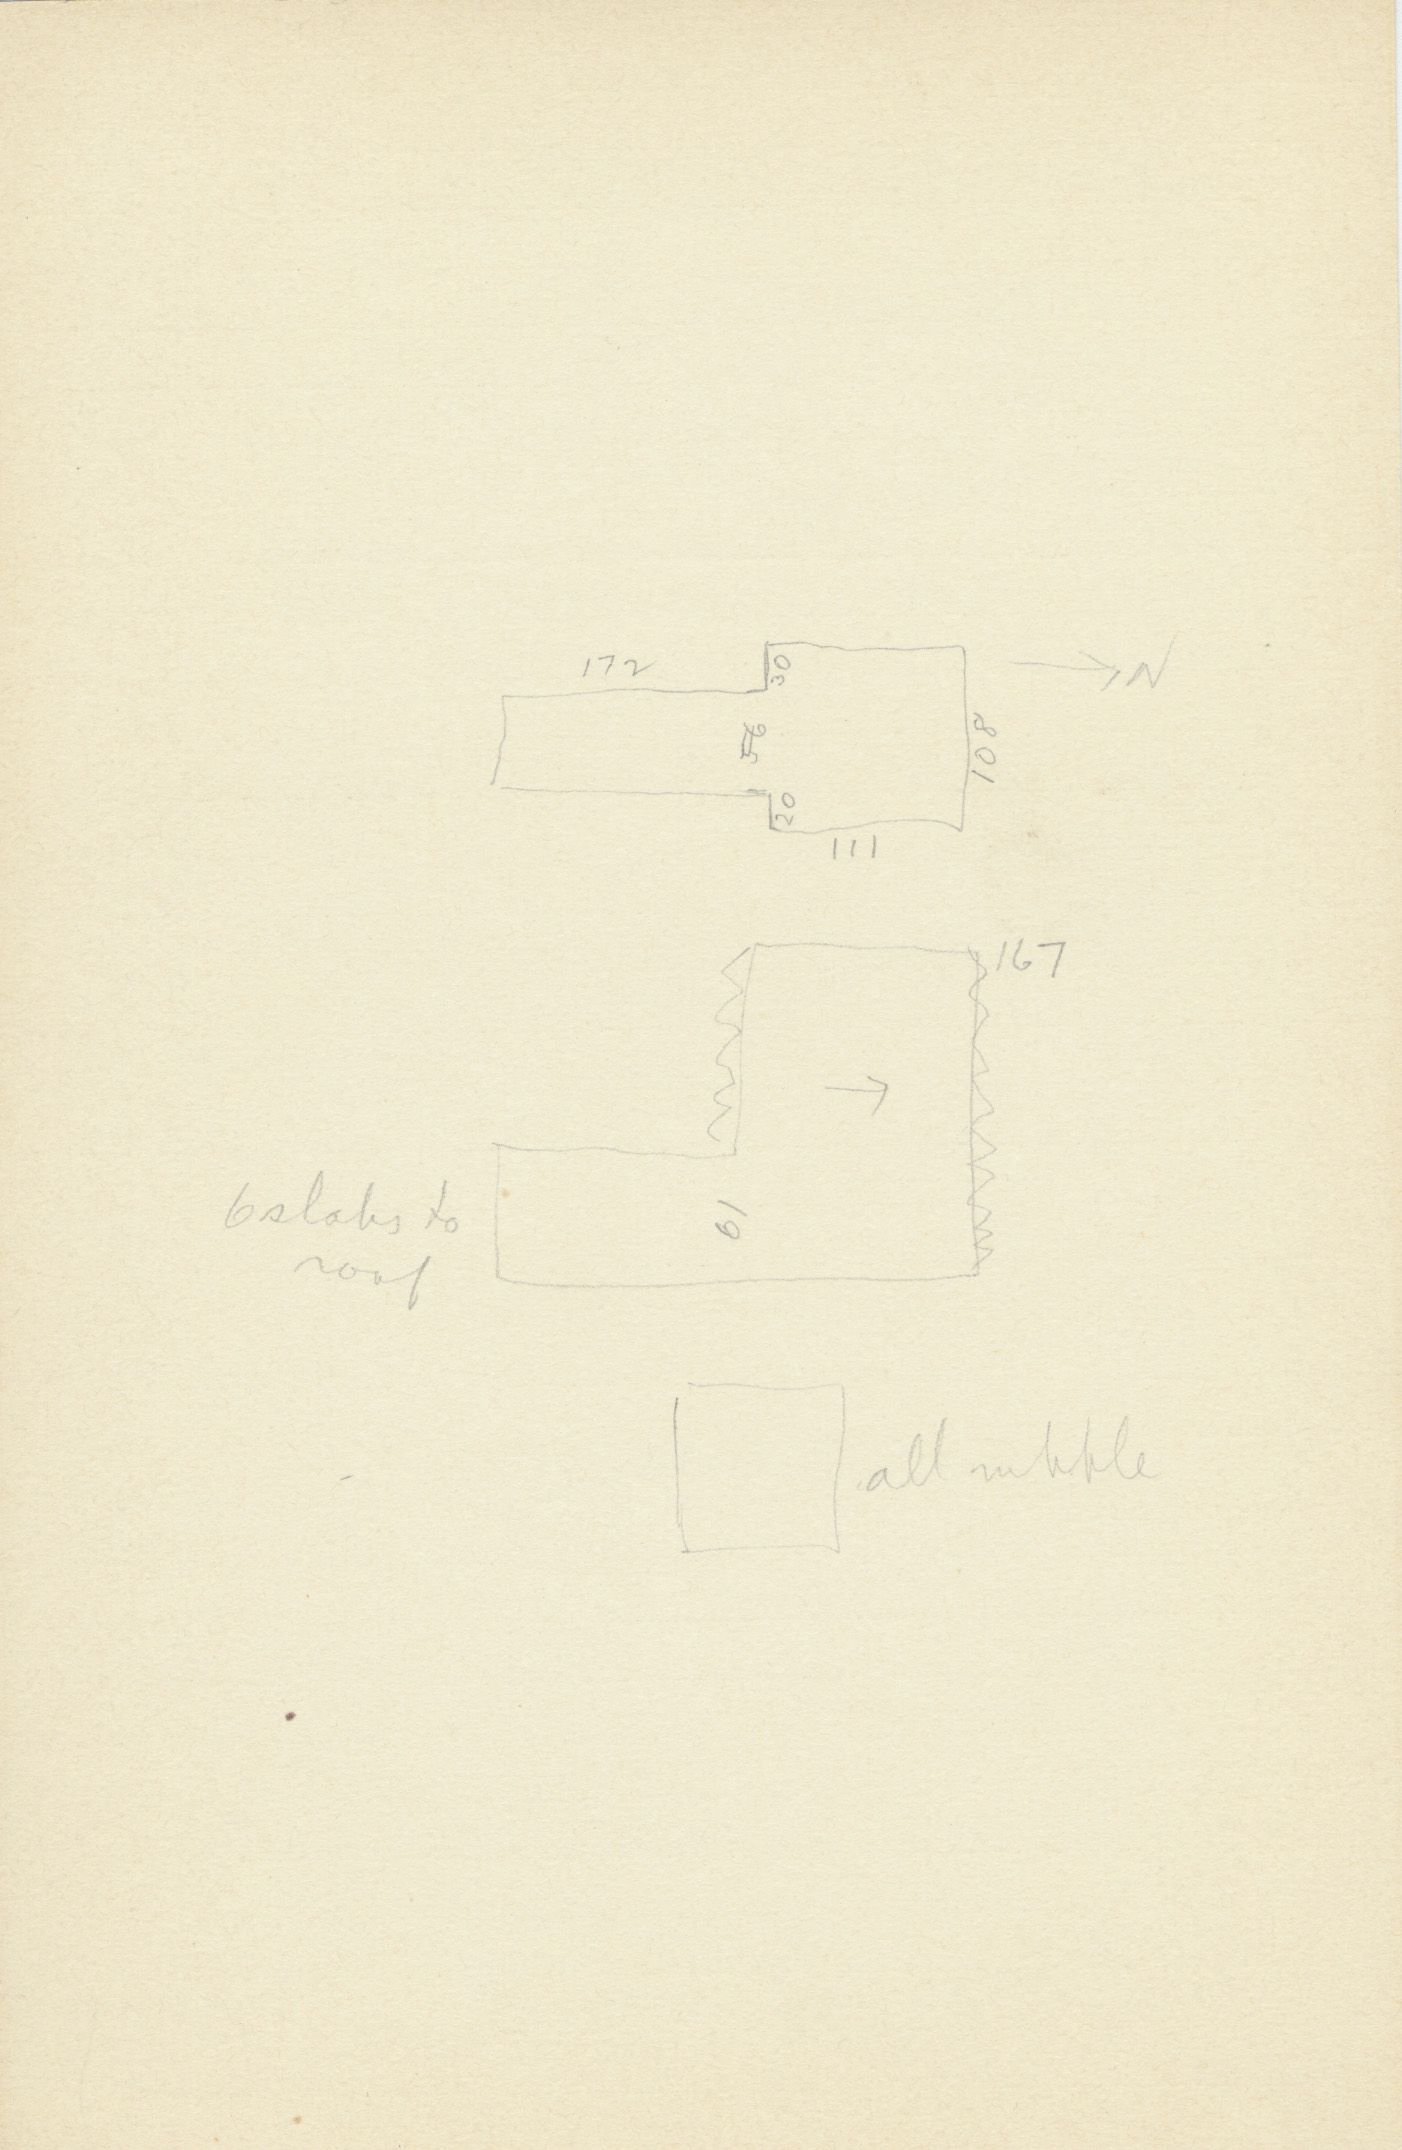 Maps and plans: G 2154, Shaft A, notes